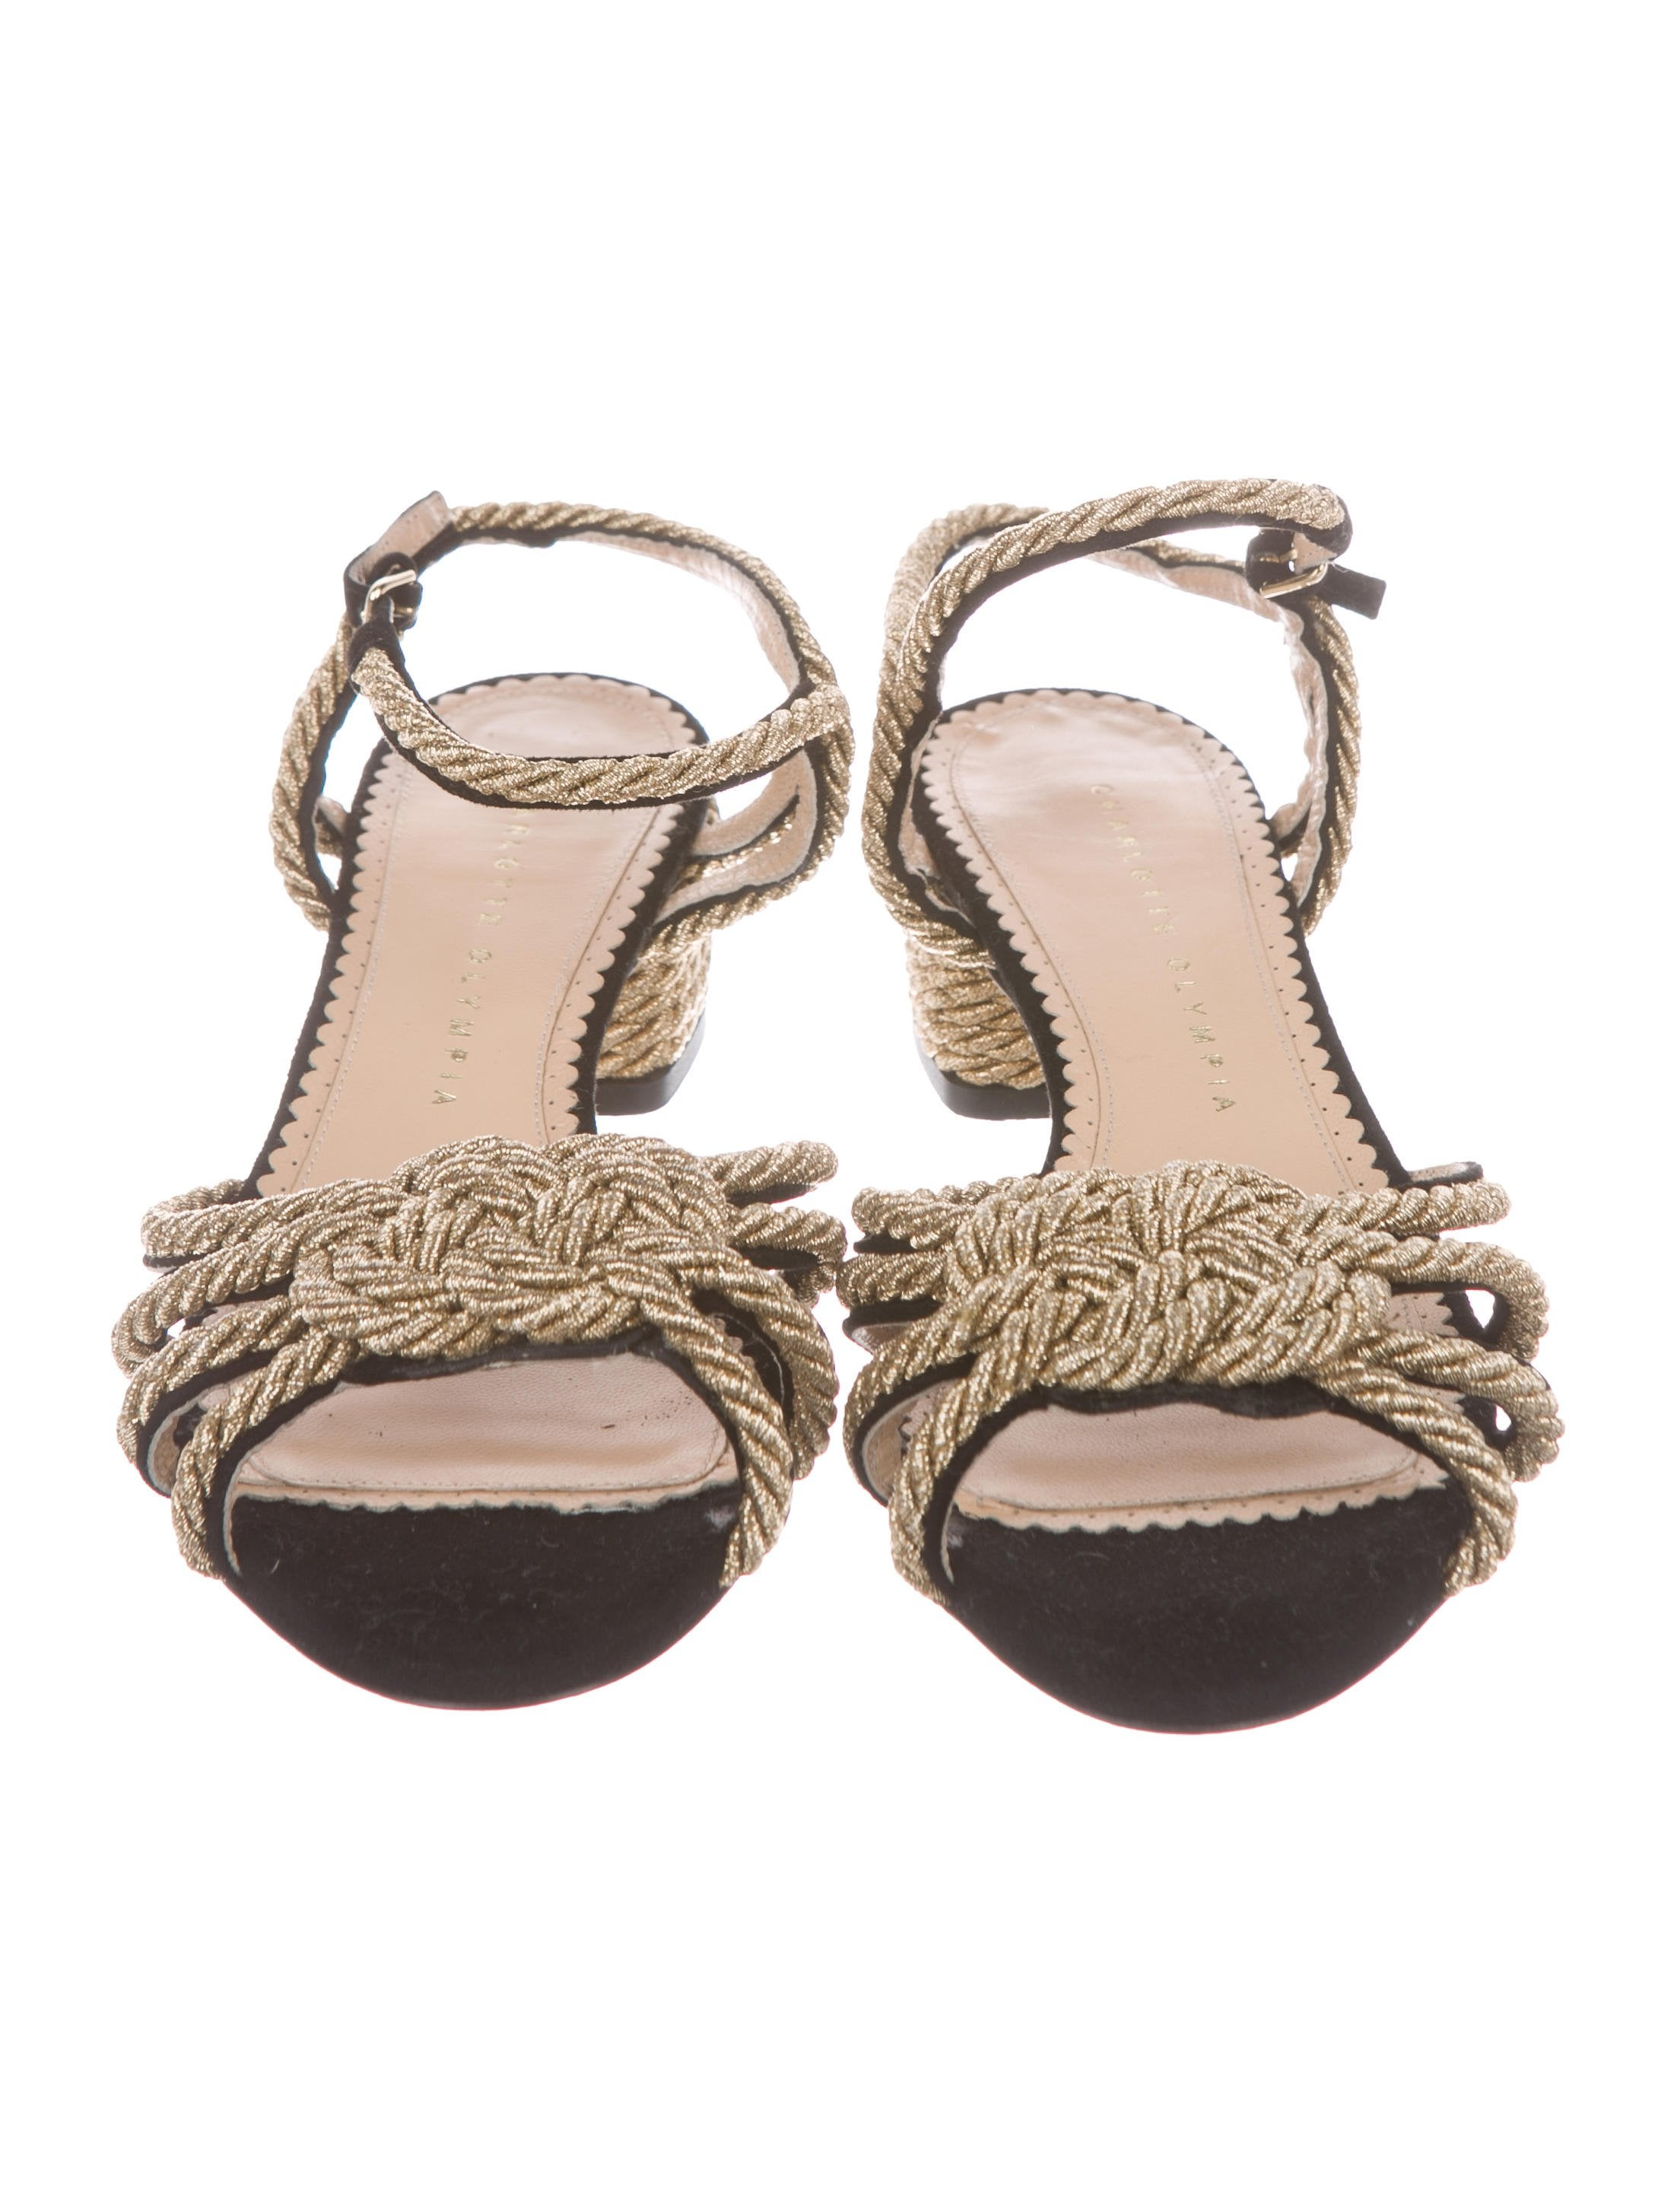 Charlotte Olympia It's Knot You, It's Me Rope-Accented Sandals